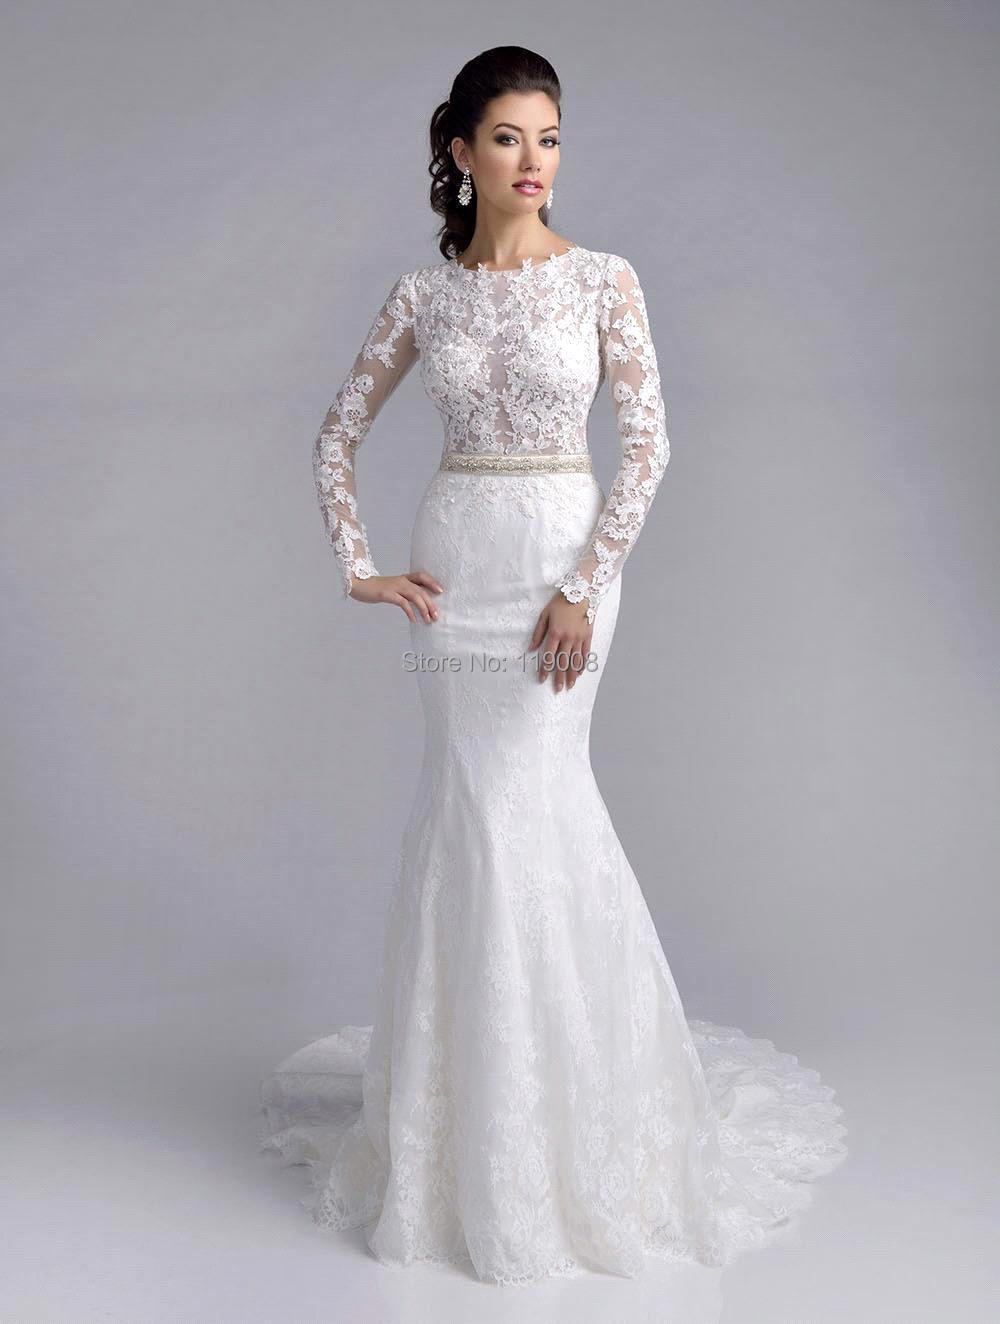 New Arrival 2016 Vestido De Noiva Sereia Lace Long Sleeve Mermaid Wedding Dre